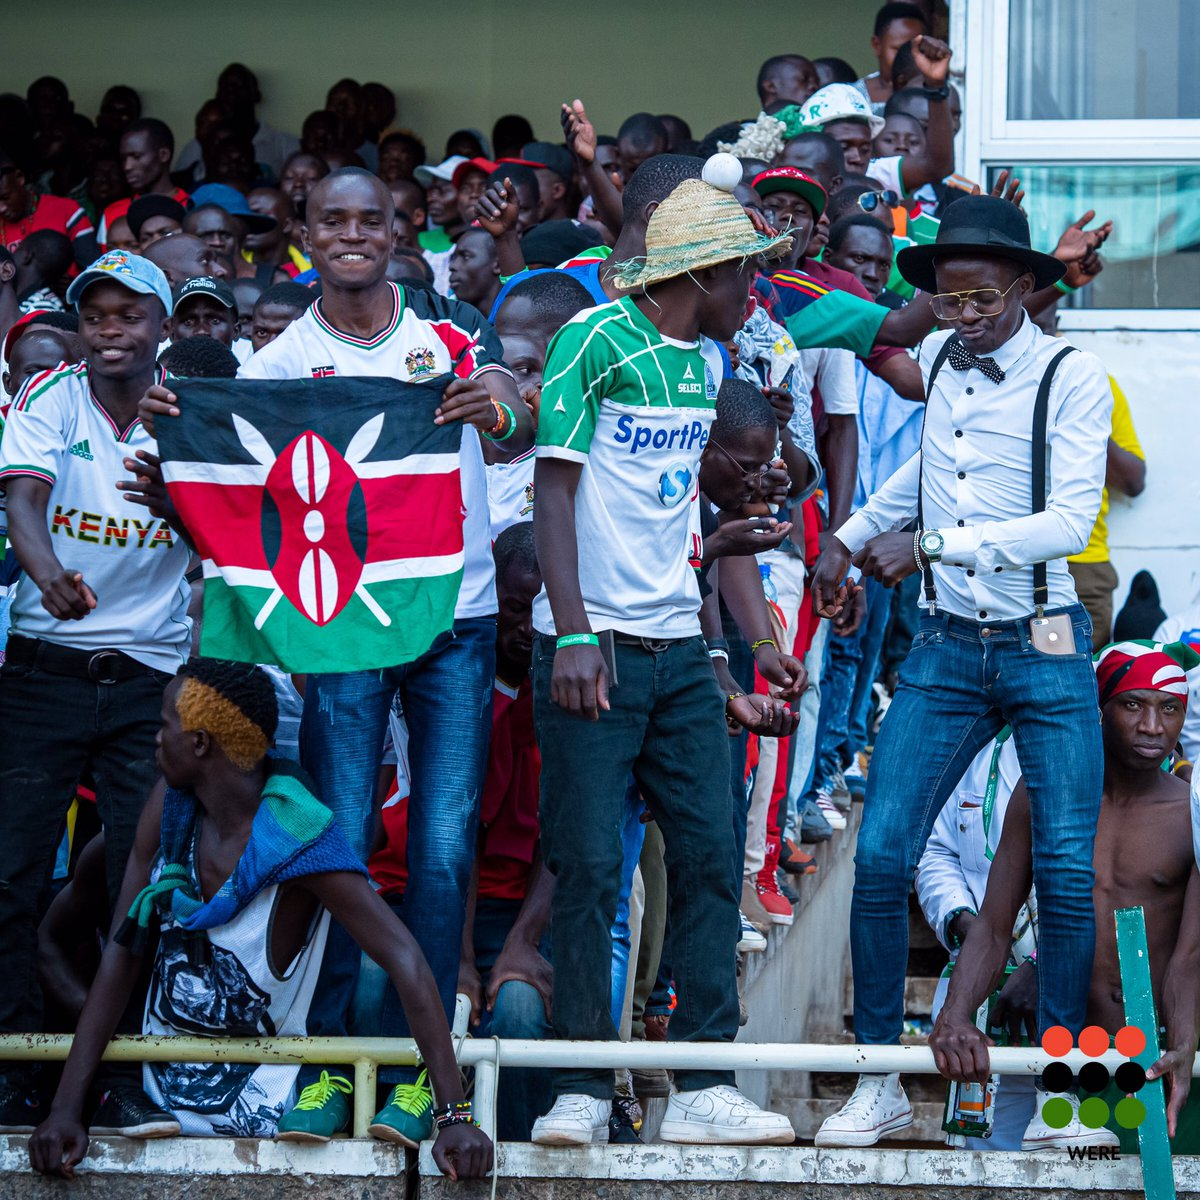 Which @harambee__stars' fan are you? National team jersey waving the National Flag? Club jersey and traditional hat? Dress shirt, bow tie, suspenders, top hat? Shirtless don't care?   #AfricaCupofNations #football #KenyaFootball #AfricanFootball #KENETH #sportphotographypic.twitter.com/Fg2ZebJlzi